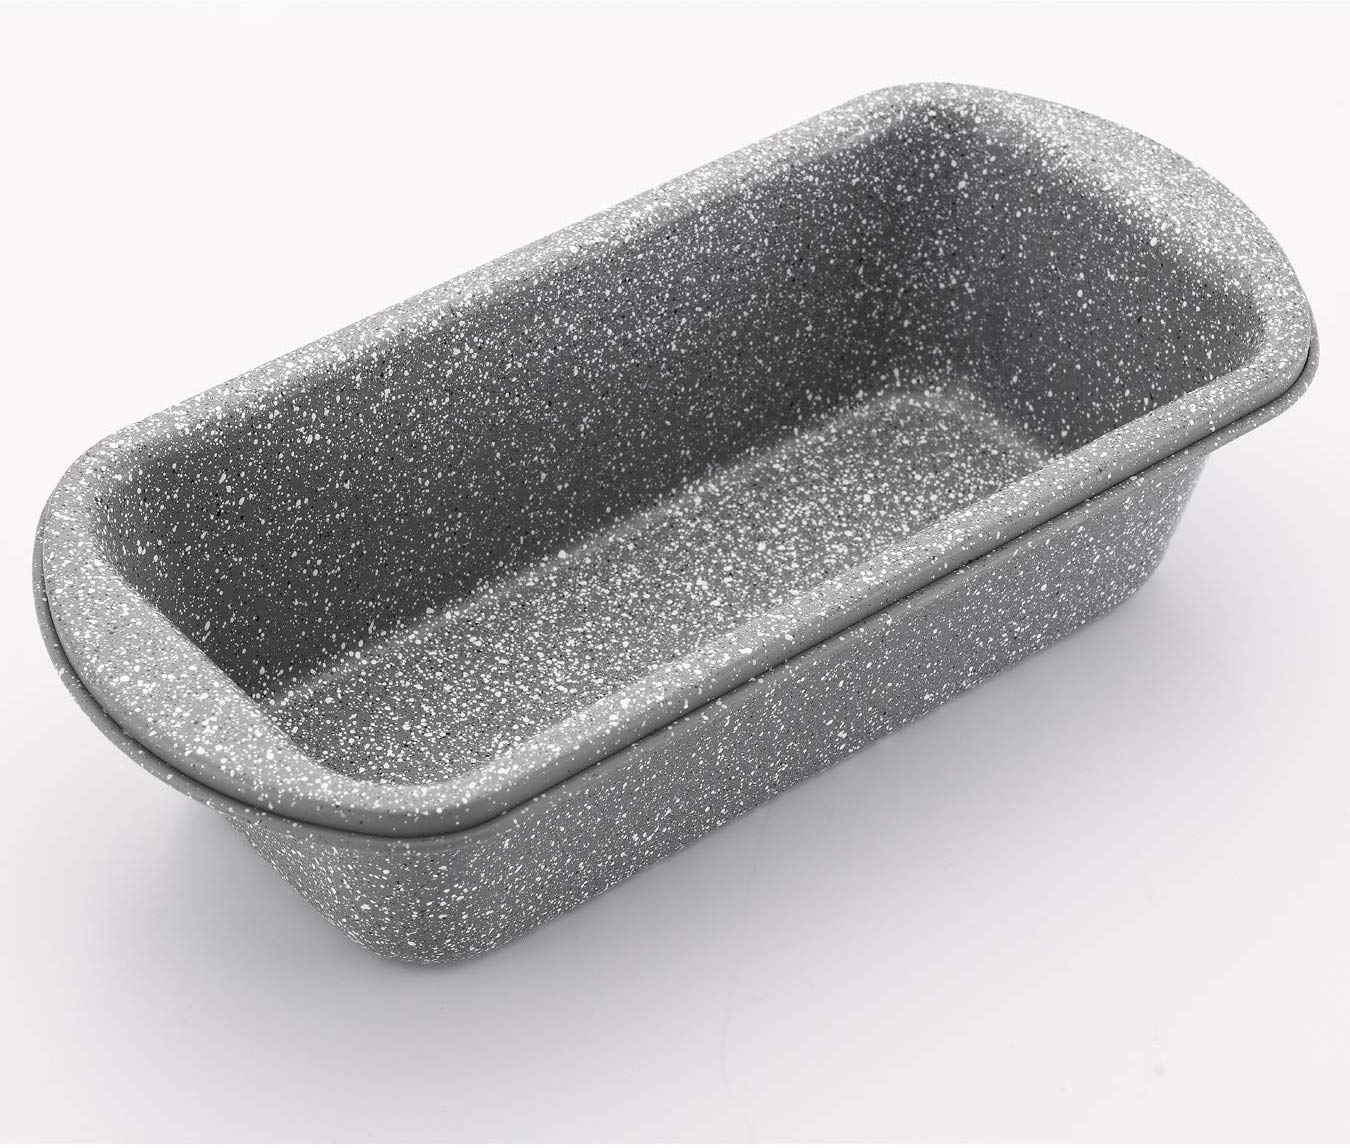 Femora Baking Carbon Steel Stone Ware Non-Stick Coated Baking Loaf Pan (Small) for Breads, Set of 2 (23x11.7x5.5 cm)